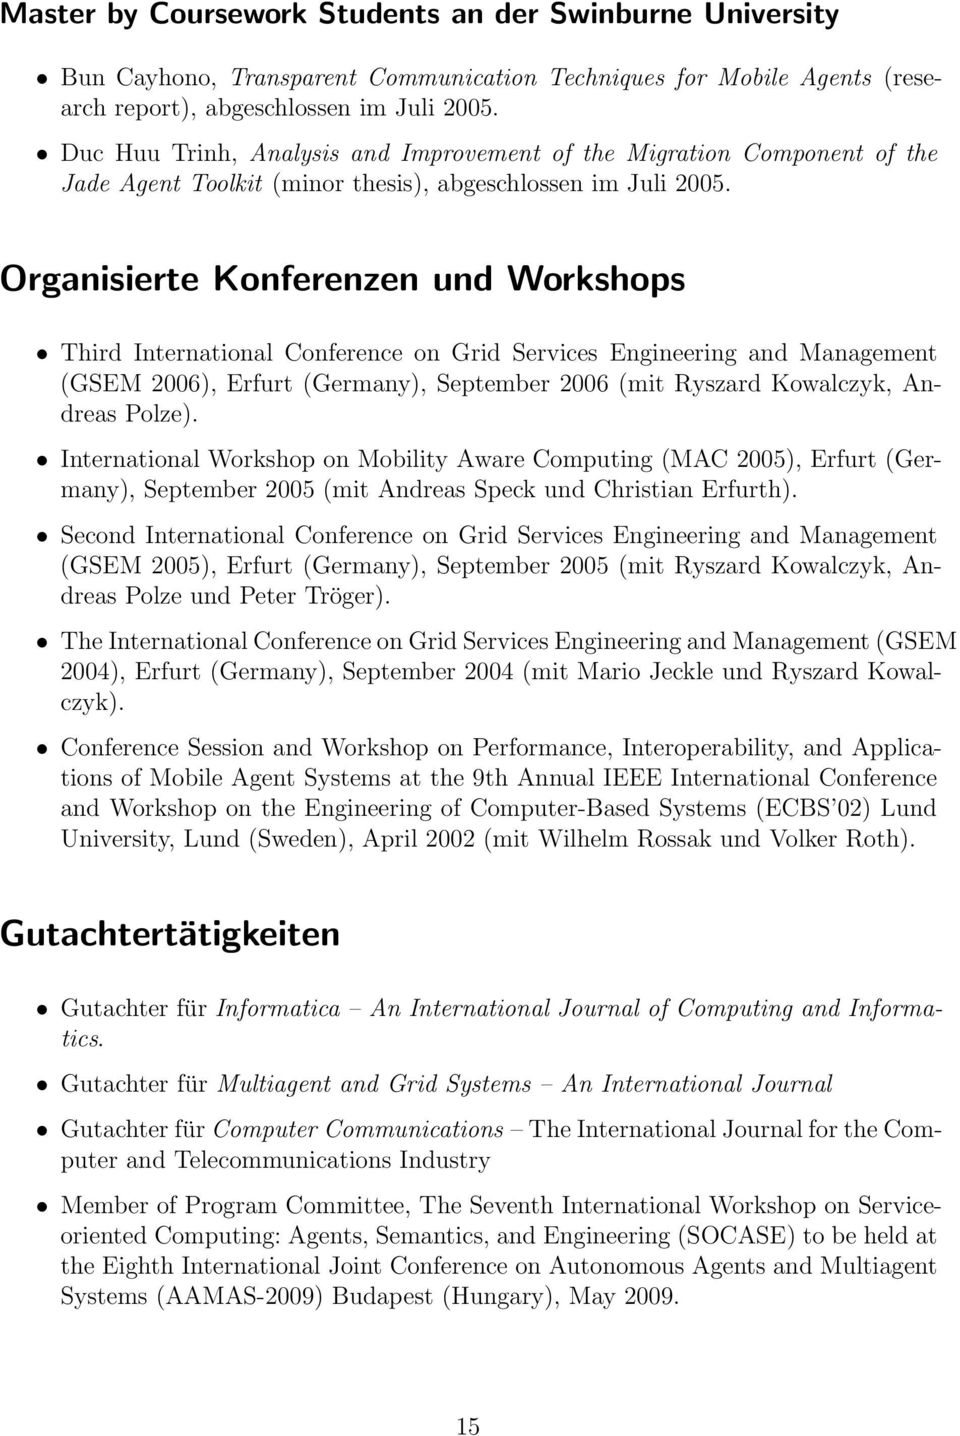 Organisierte Konferenzen und Workshops Third International Conference on Grid Services Engineering and Management (GSEM 2006), Erfurt (Germany), September 2006 (mit Ryszard Kowalczyk, Andreas Polze).